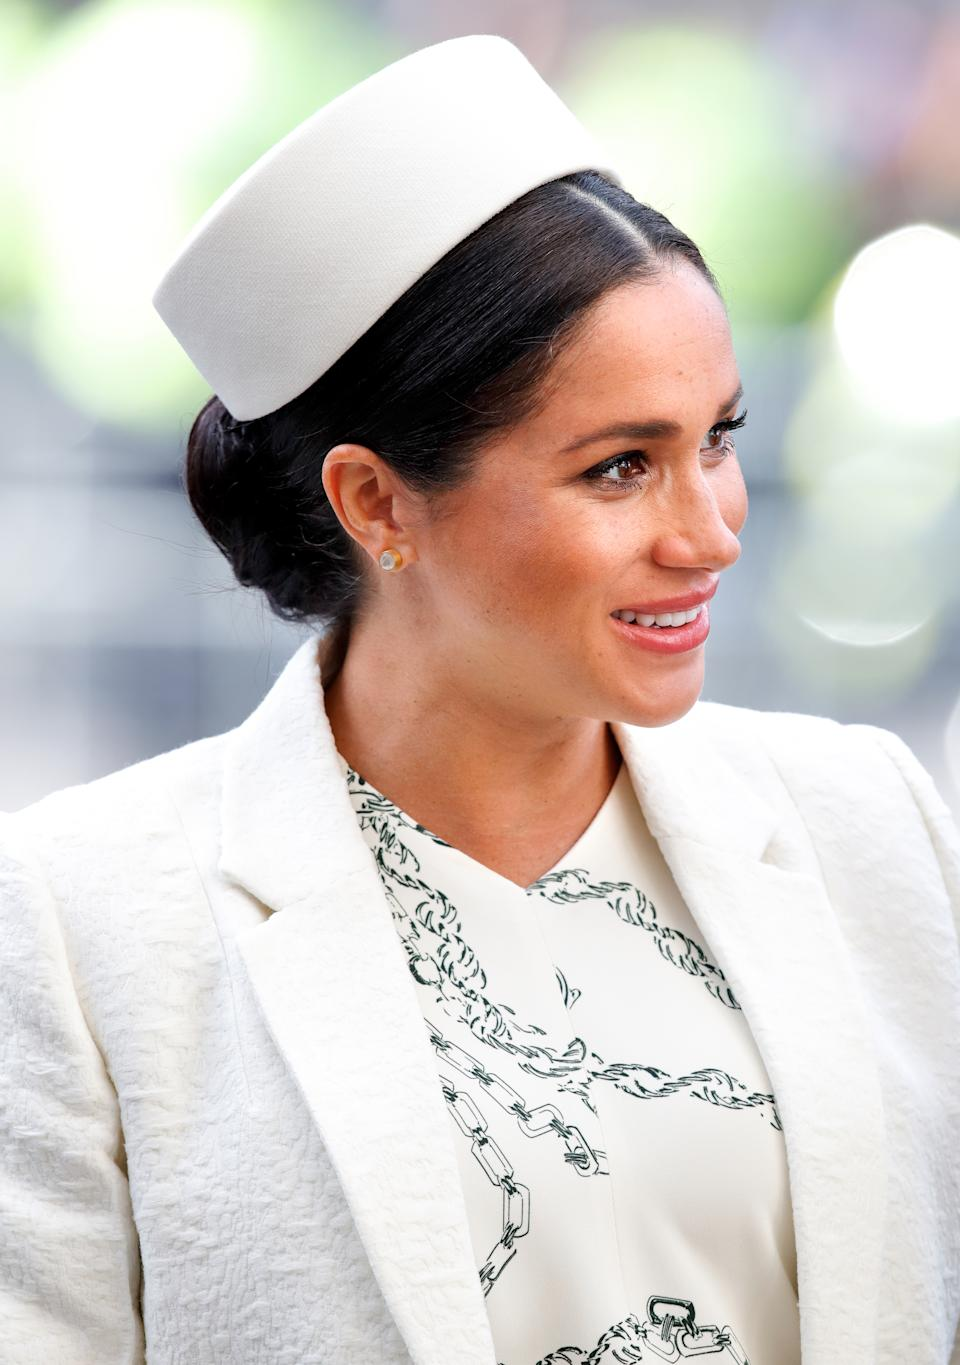 LONDON, UNITED KINGDOM - MARCH 11: (EMBARGOED FOR PUBLICATION IN UK NEWSPAPERS UNTIL 24 HOURS AFTER CREATE DATE AND TIME) Meghan, Duchess of Sussex attends the 2019 Commonwealth Day service at Westminster Abbey on March 11, 2019 in London, England. (Photo by Max Mumby/Indigo/Getty Images)